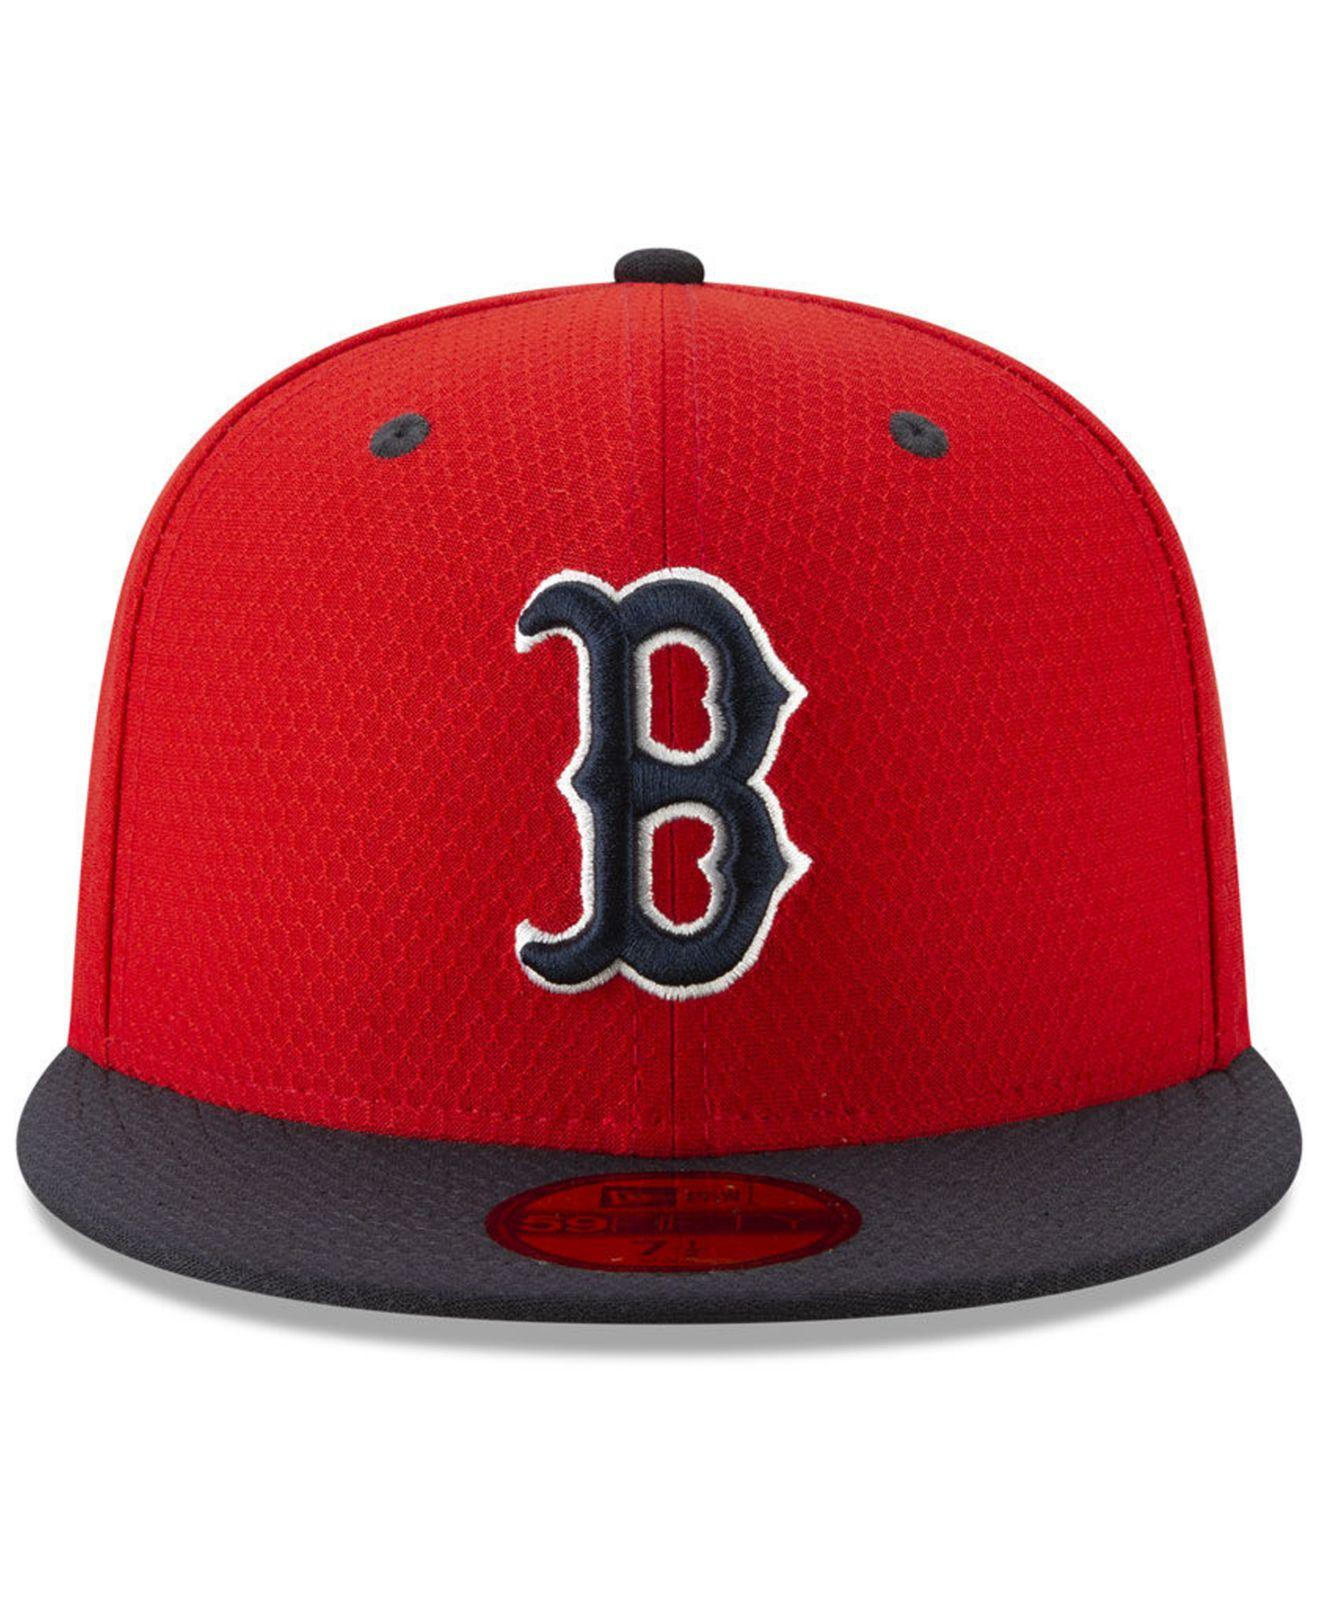 check out 506d4 65a2e KTZ - Boston Red Sox Batting Practice 59fifty-fitted Cap for Men - Lyst.  View fullscreen